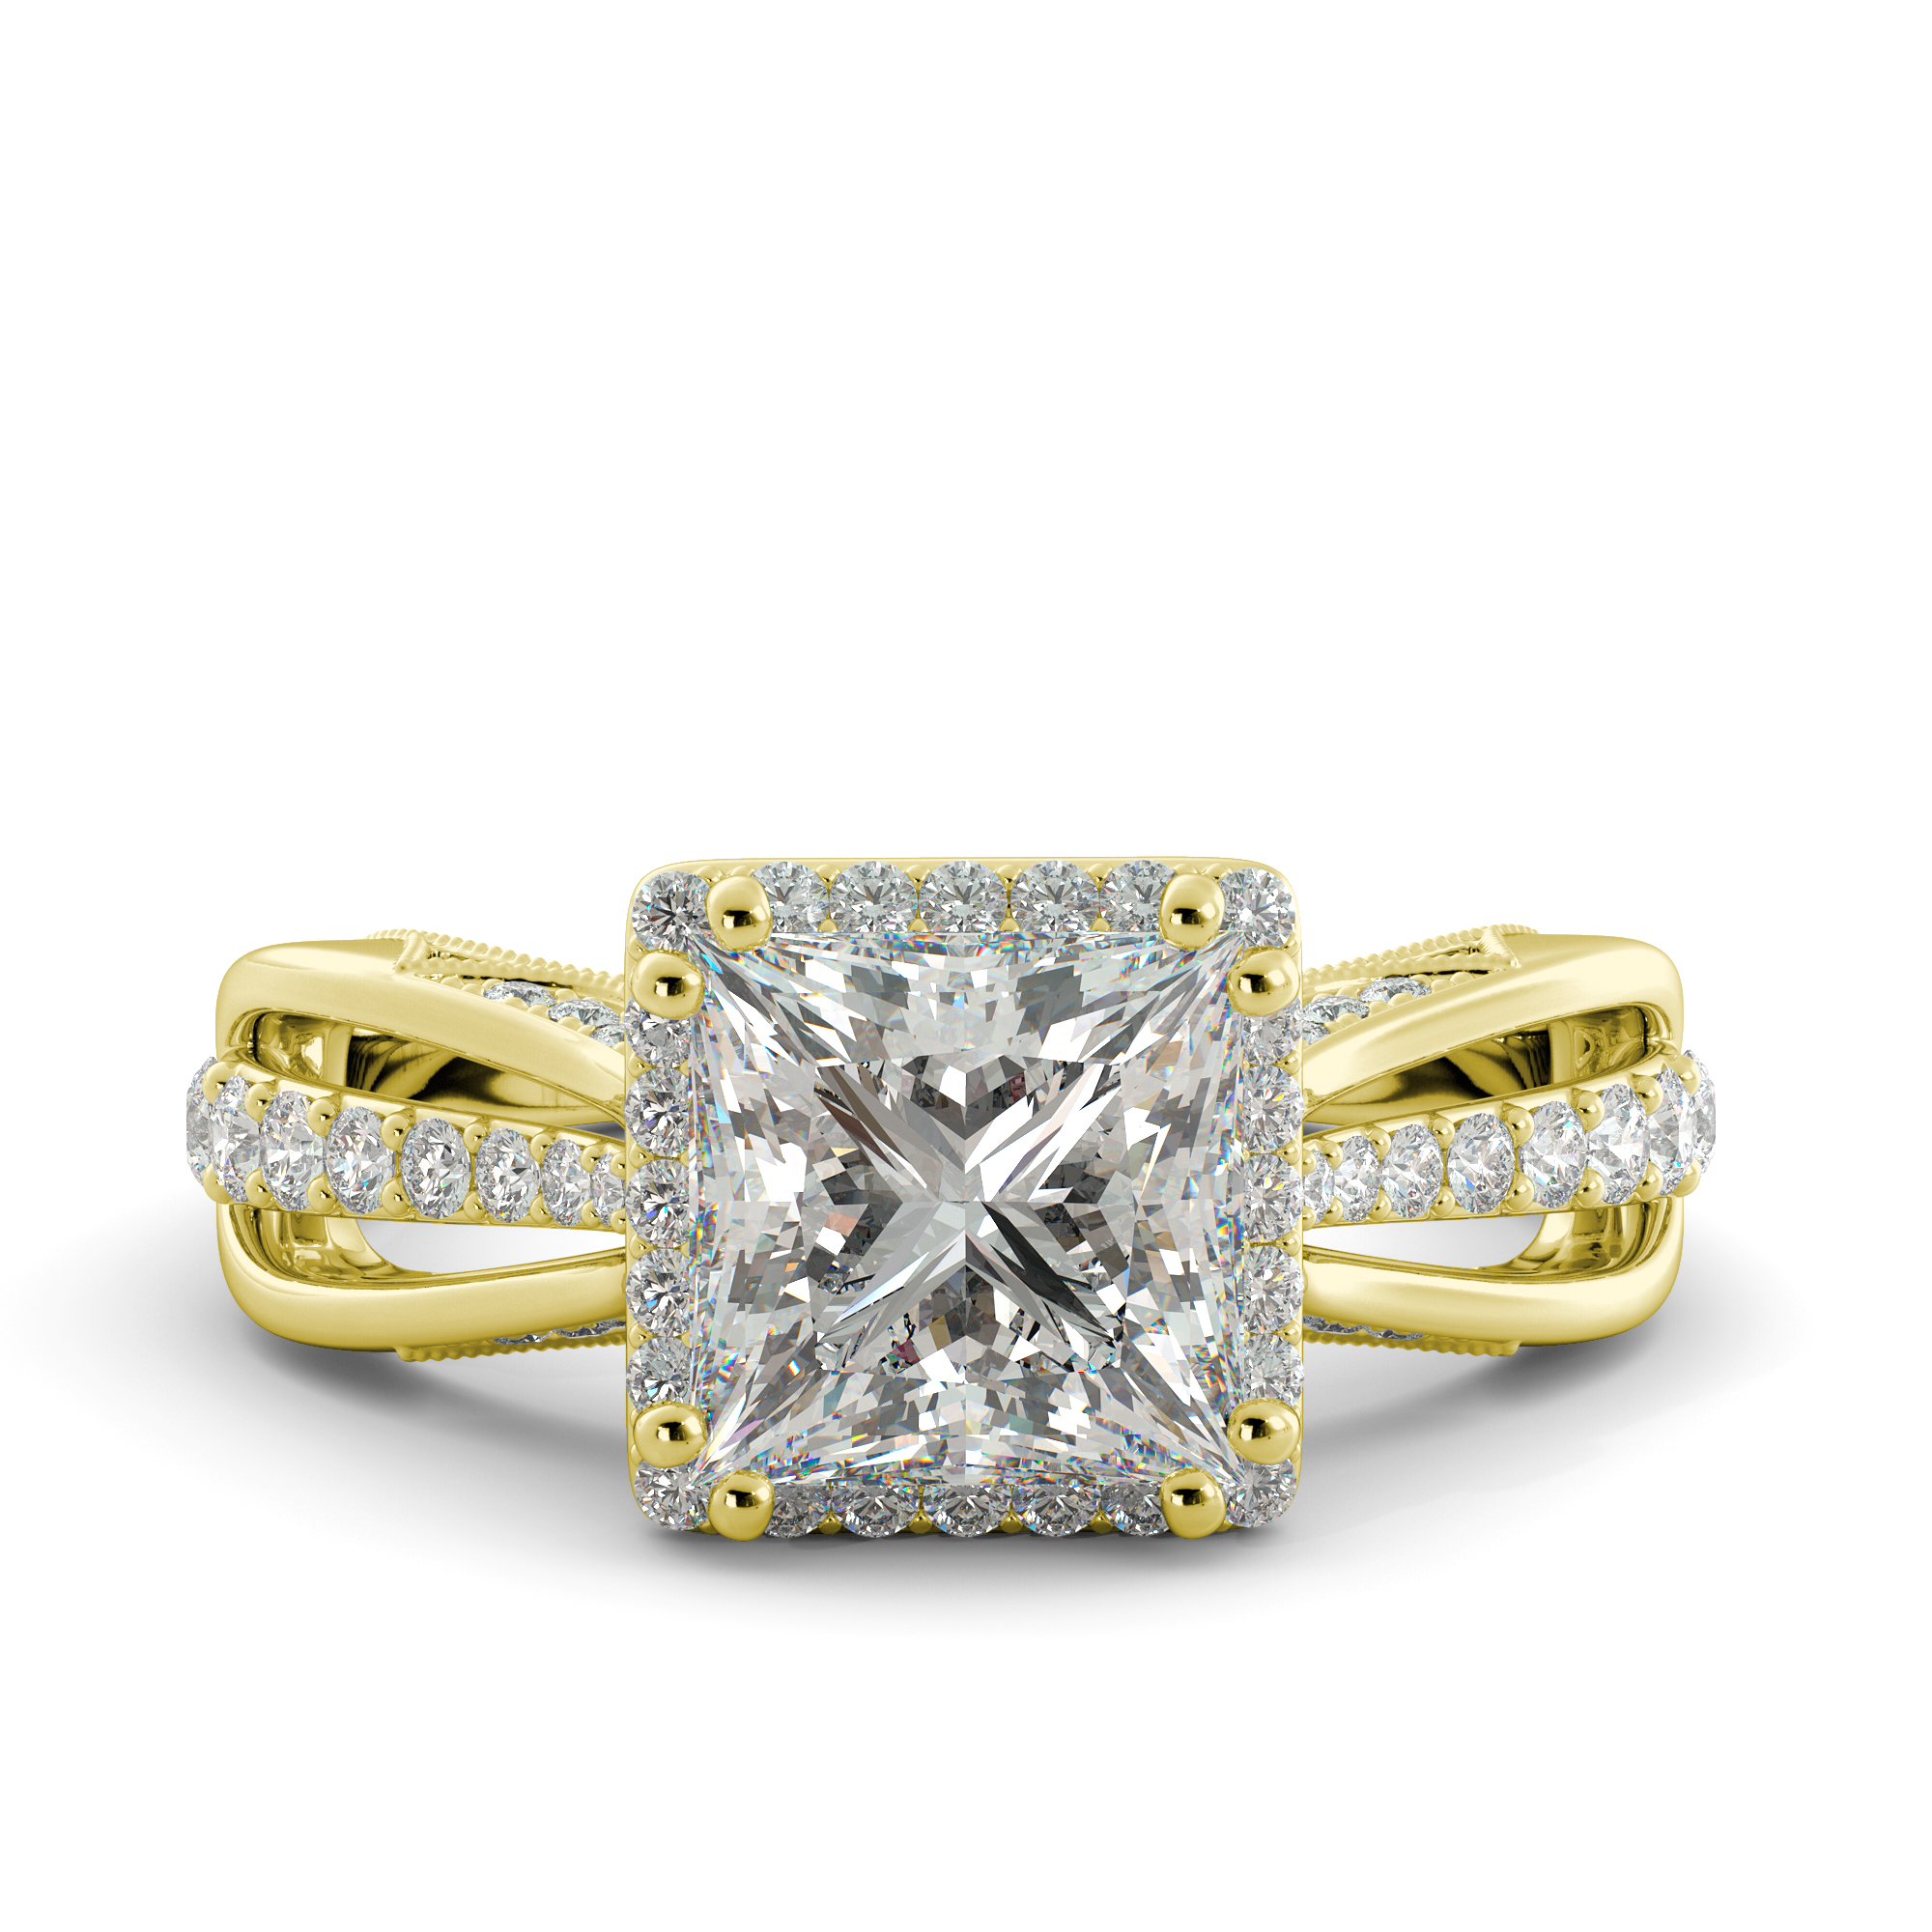 3.25 ct Princess Brilliant Moissanite & Diamond Solitaire Engagement Ring 14k Yellow Gold by J&H Jewelers